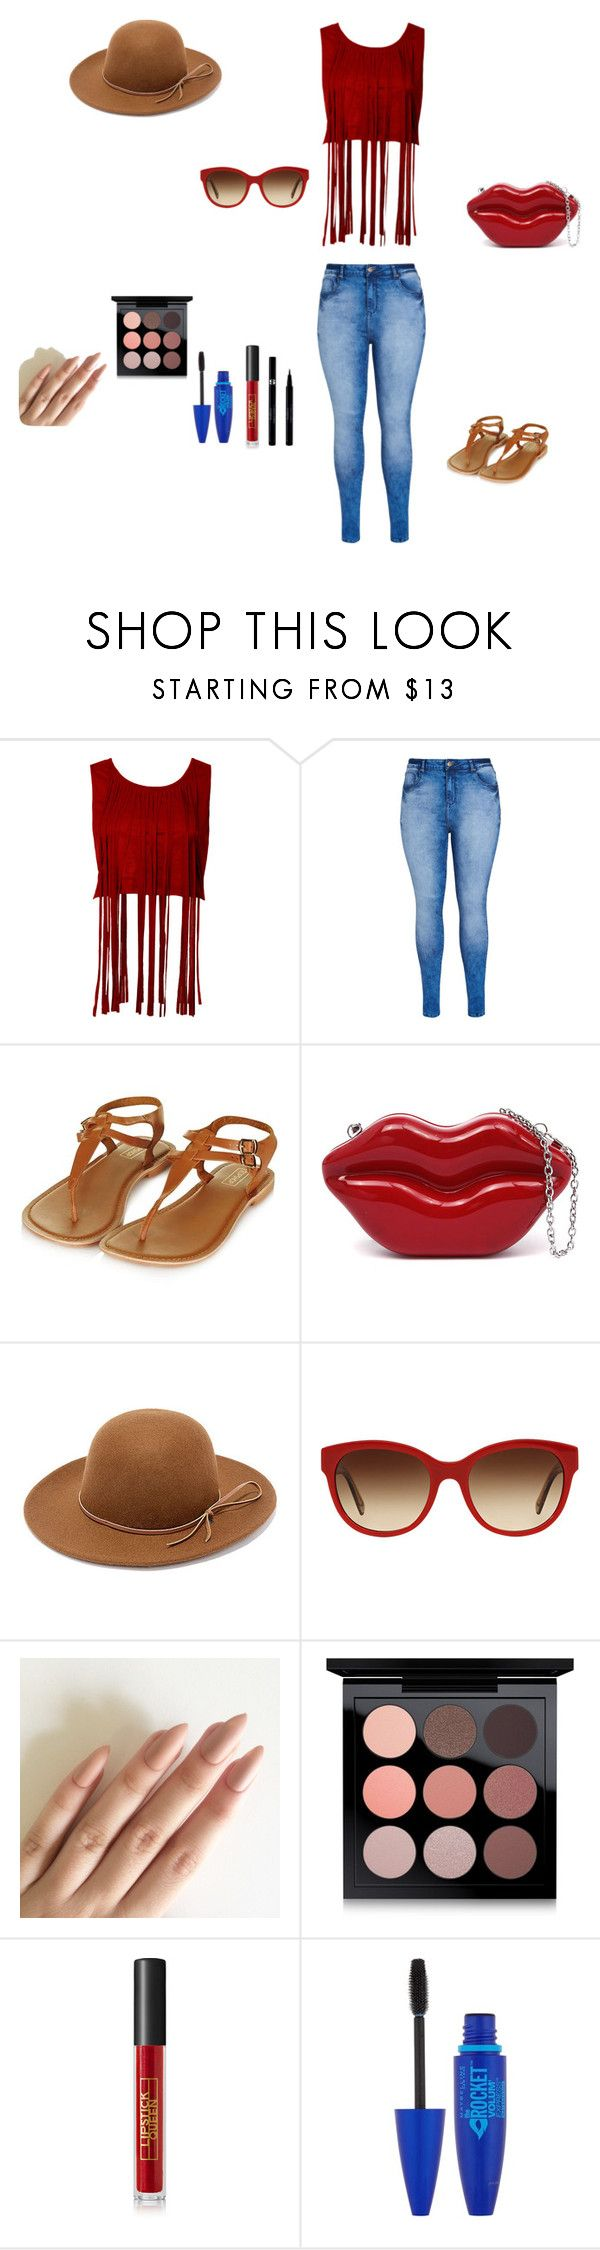 """""""Nice sunny day"""" by diva-drama ❤ liked on Polyvore featuring beauty, City Chic, Topshop, Rhythm., Burberry, MAC Cosmetics, Lipstick Queen, Maybelline and Sisley"""